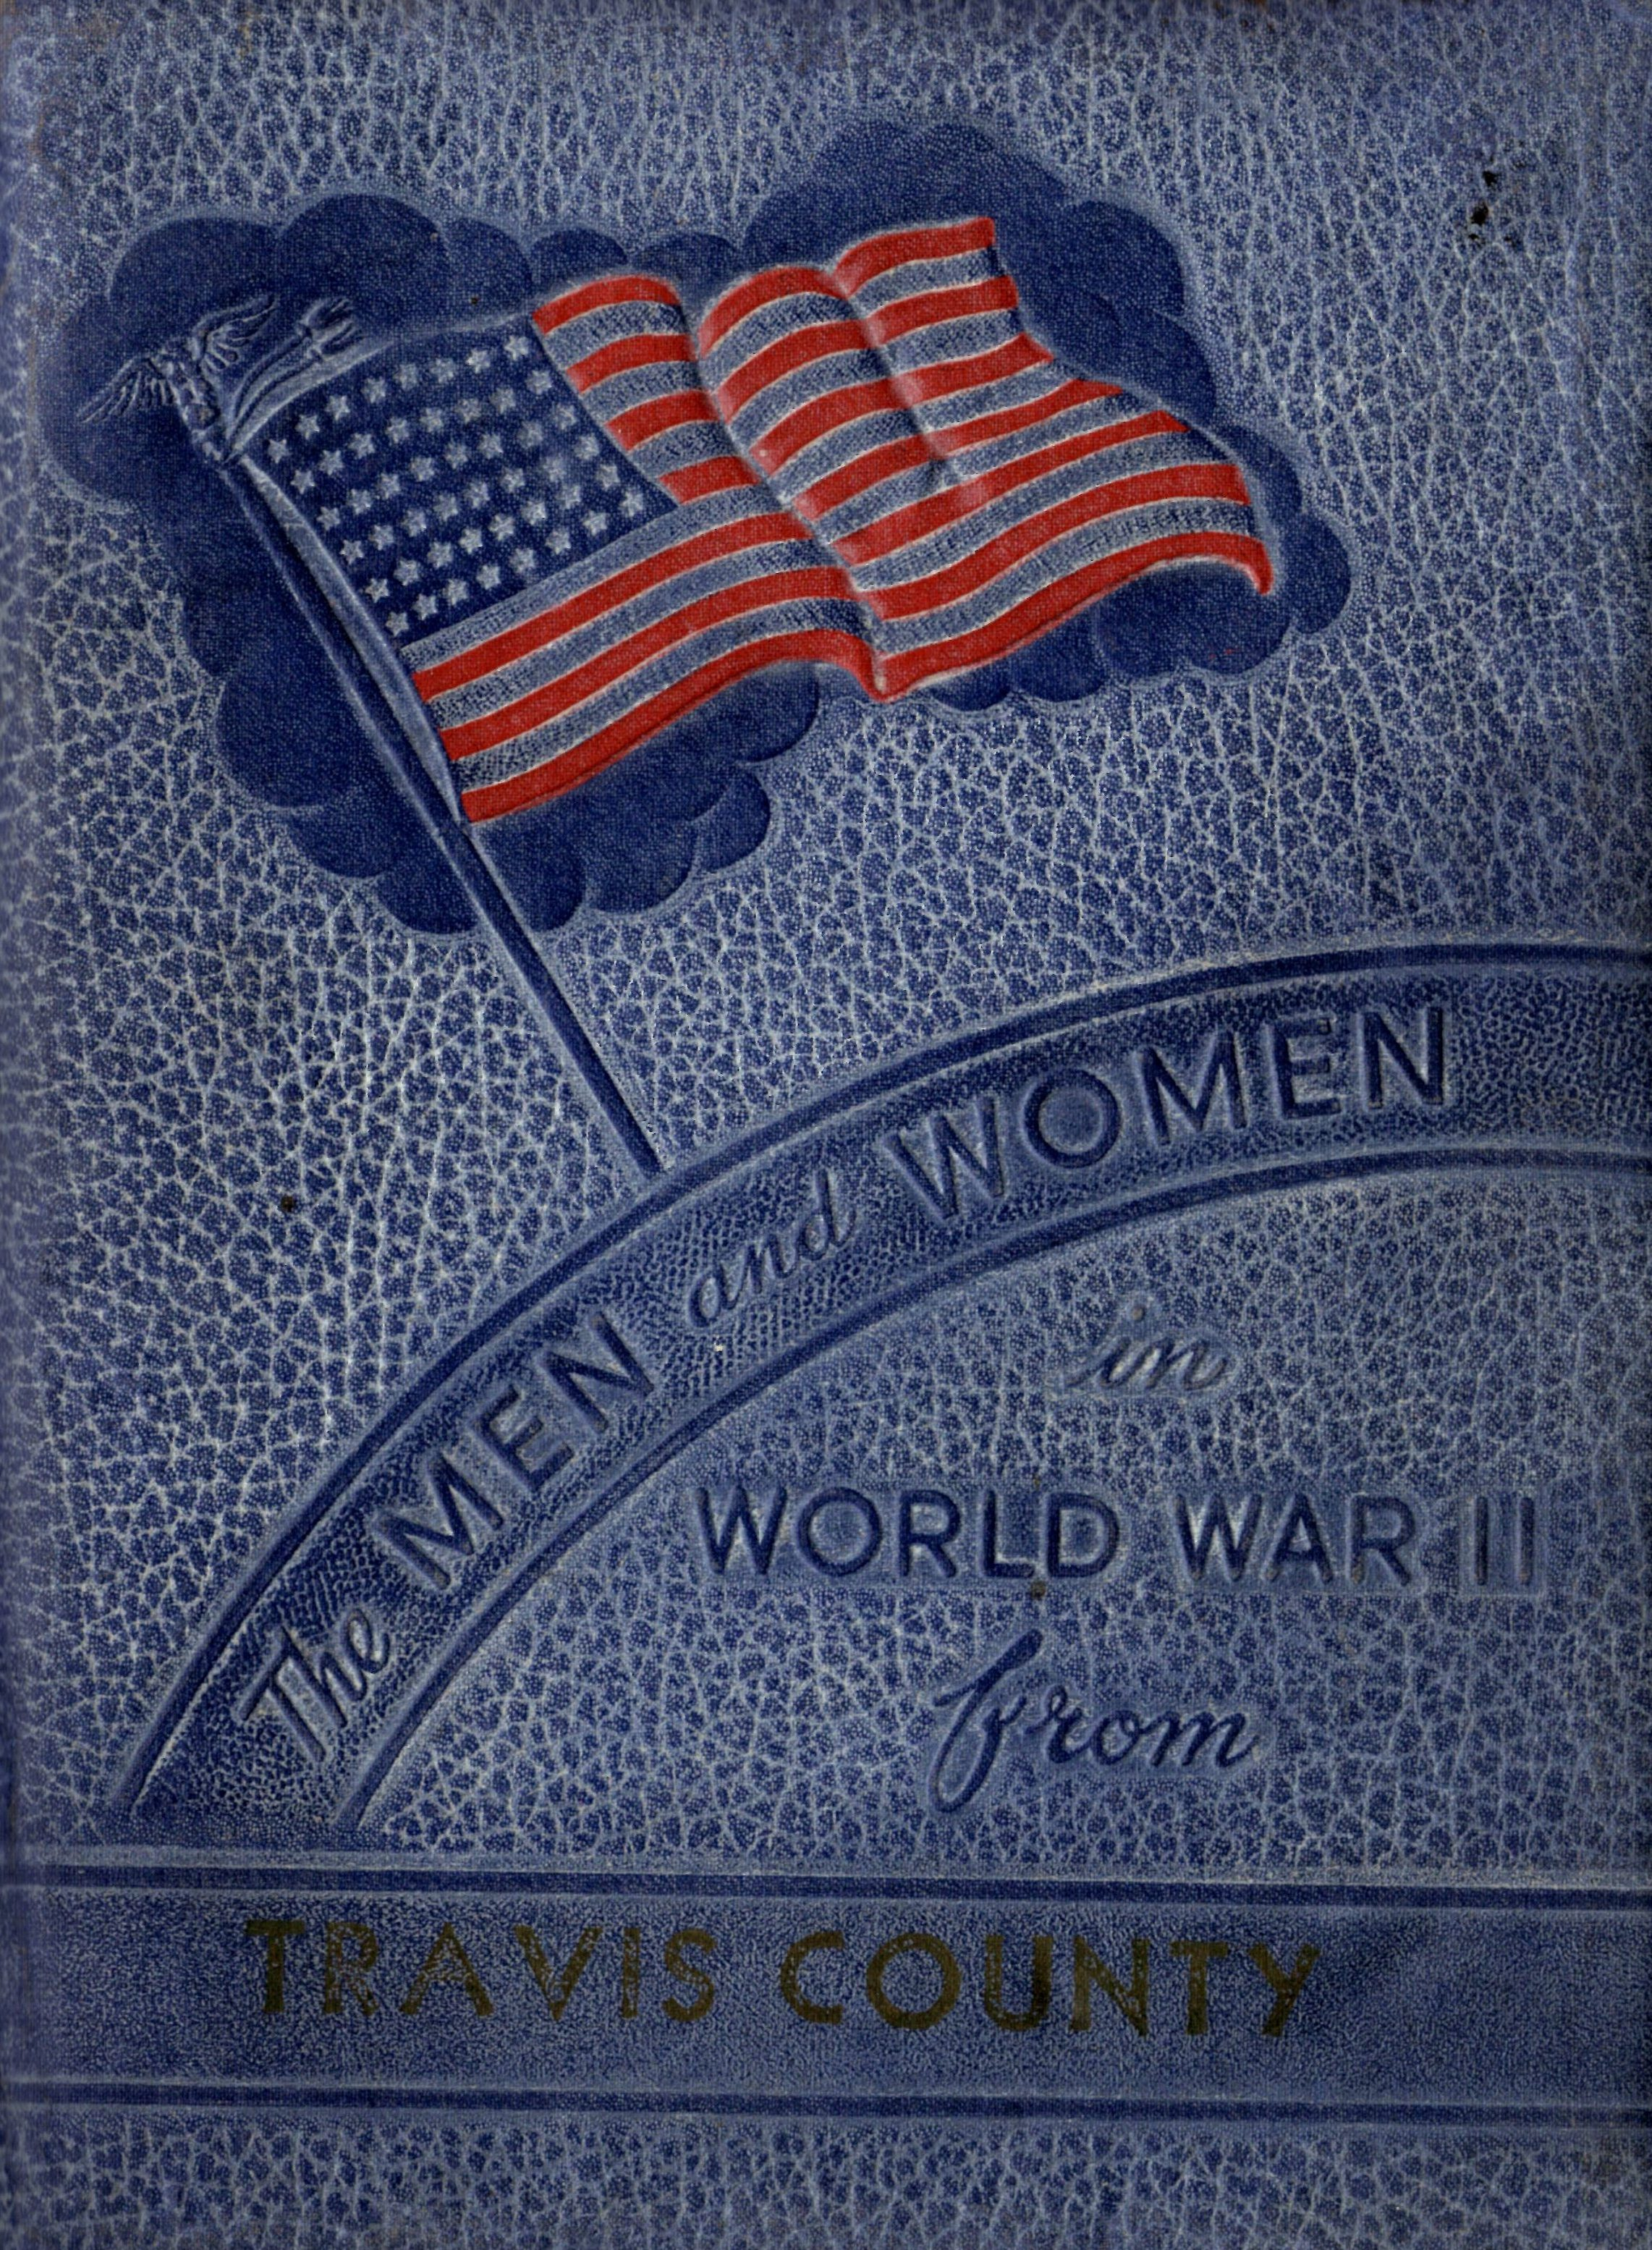 Men and women in the Armed Forces from Travis County Texas WW2 WWII World War Two II 2